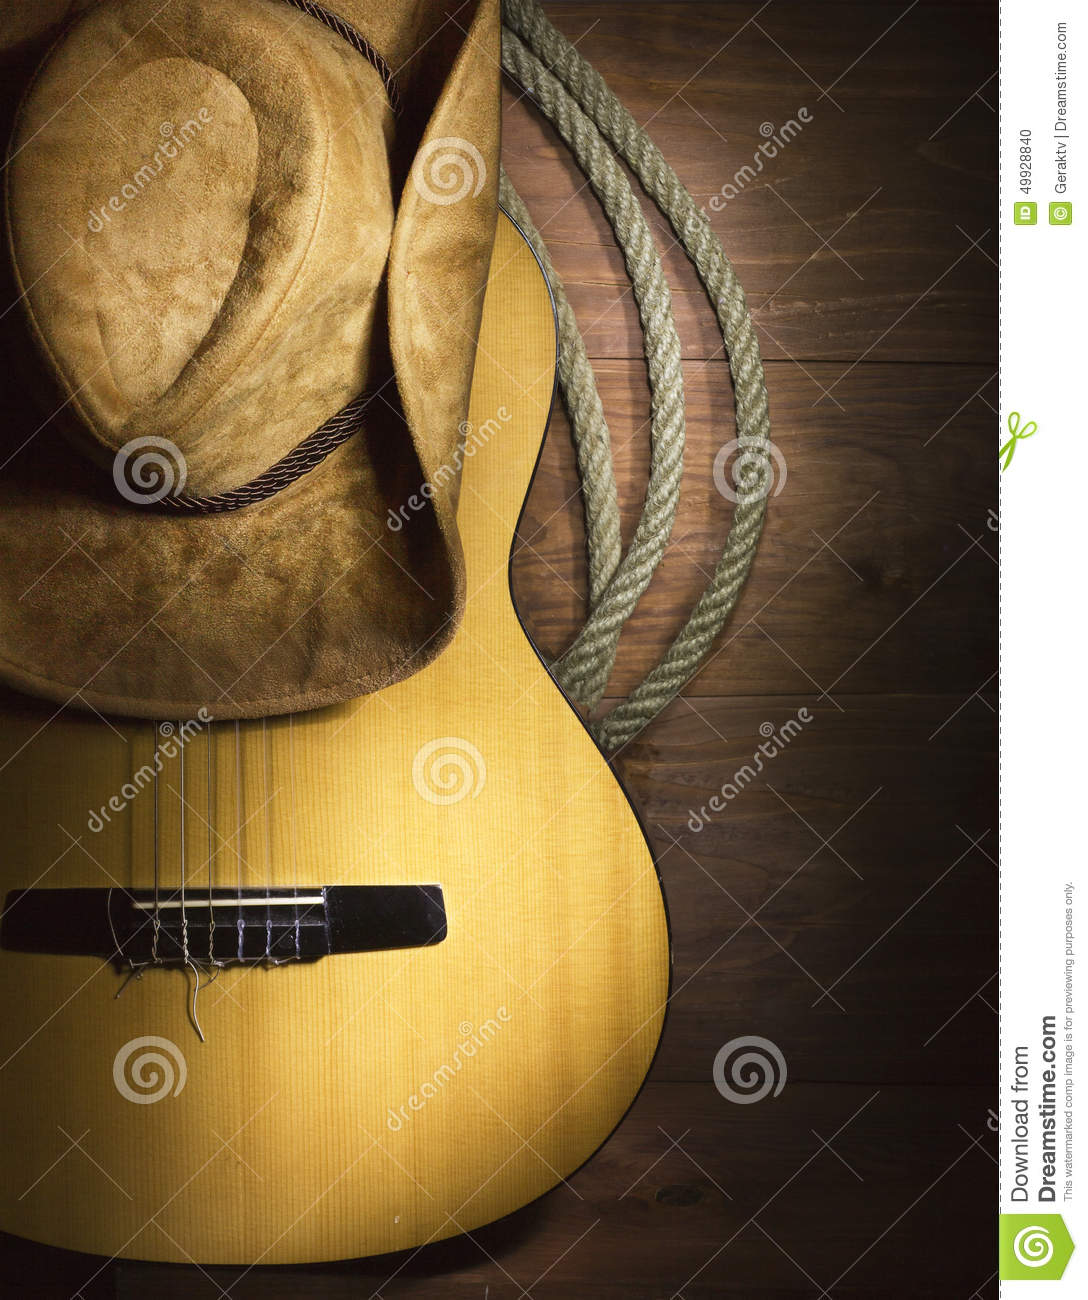 Country Music With Guitar On Wood Background Stock Photo